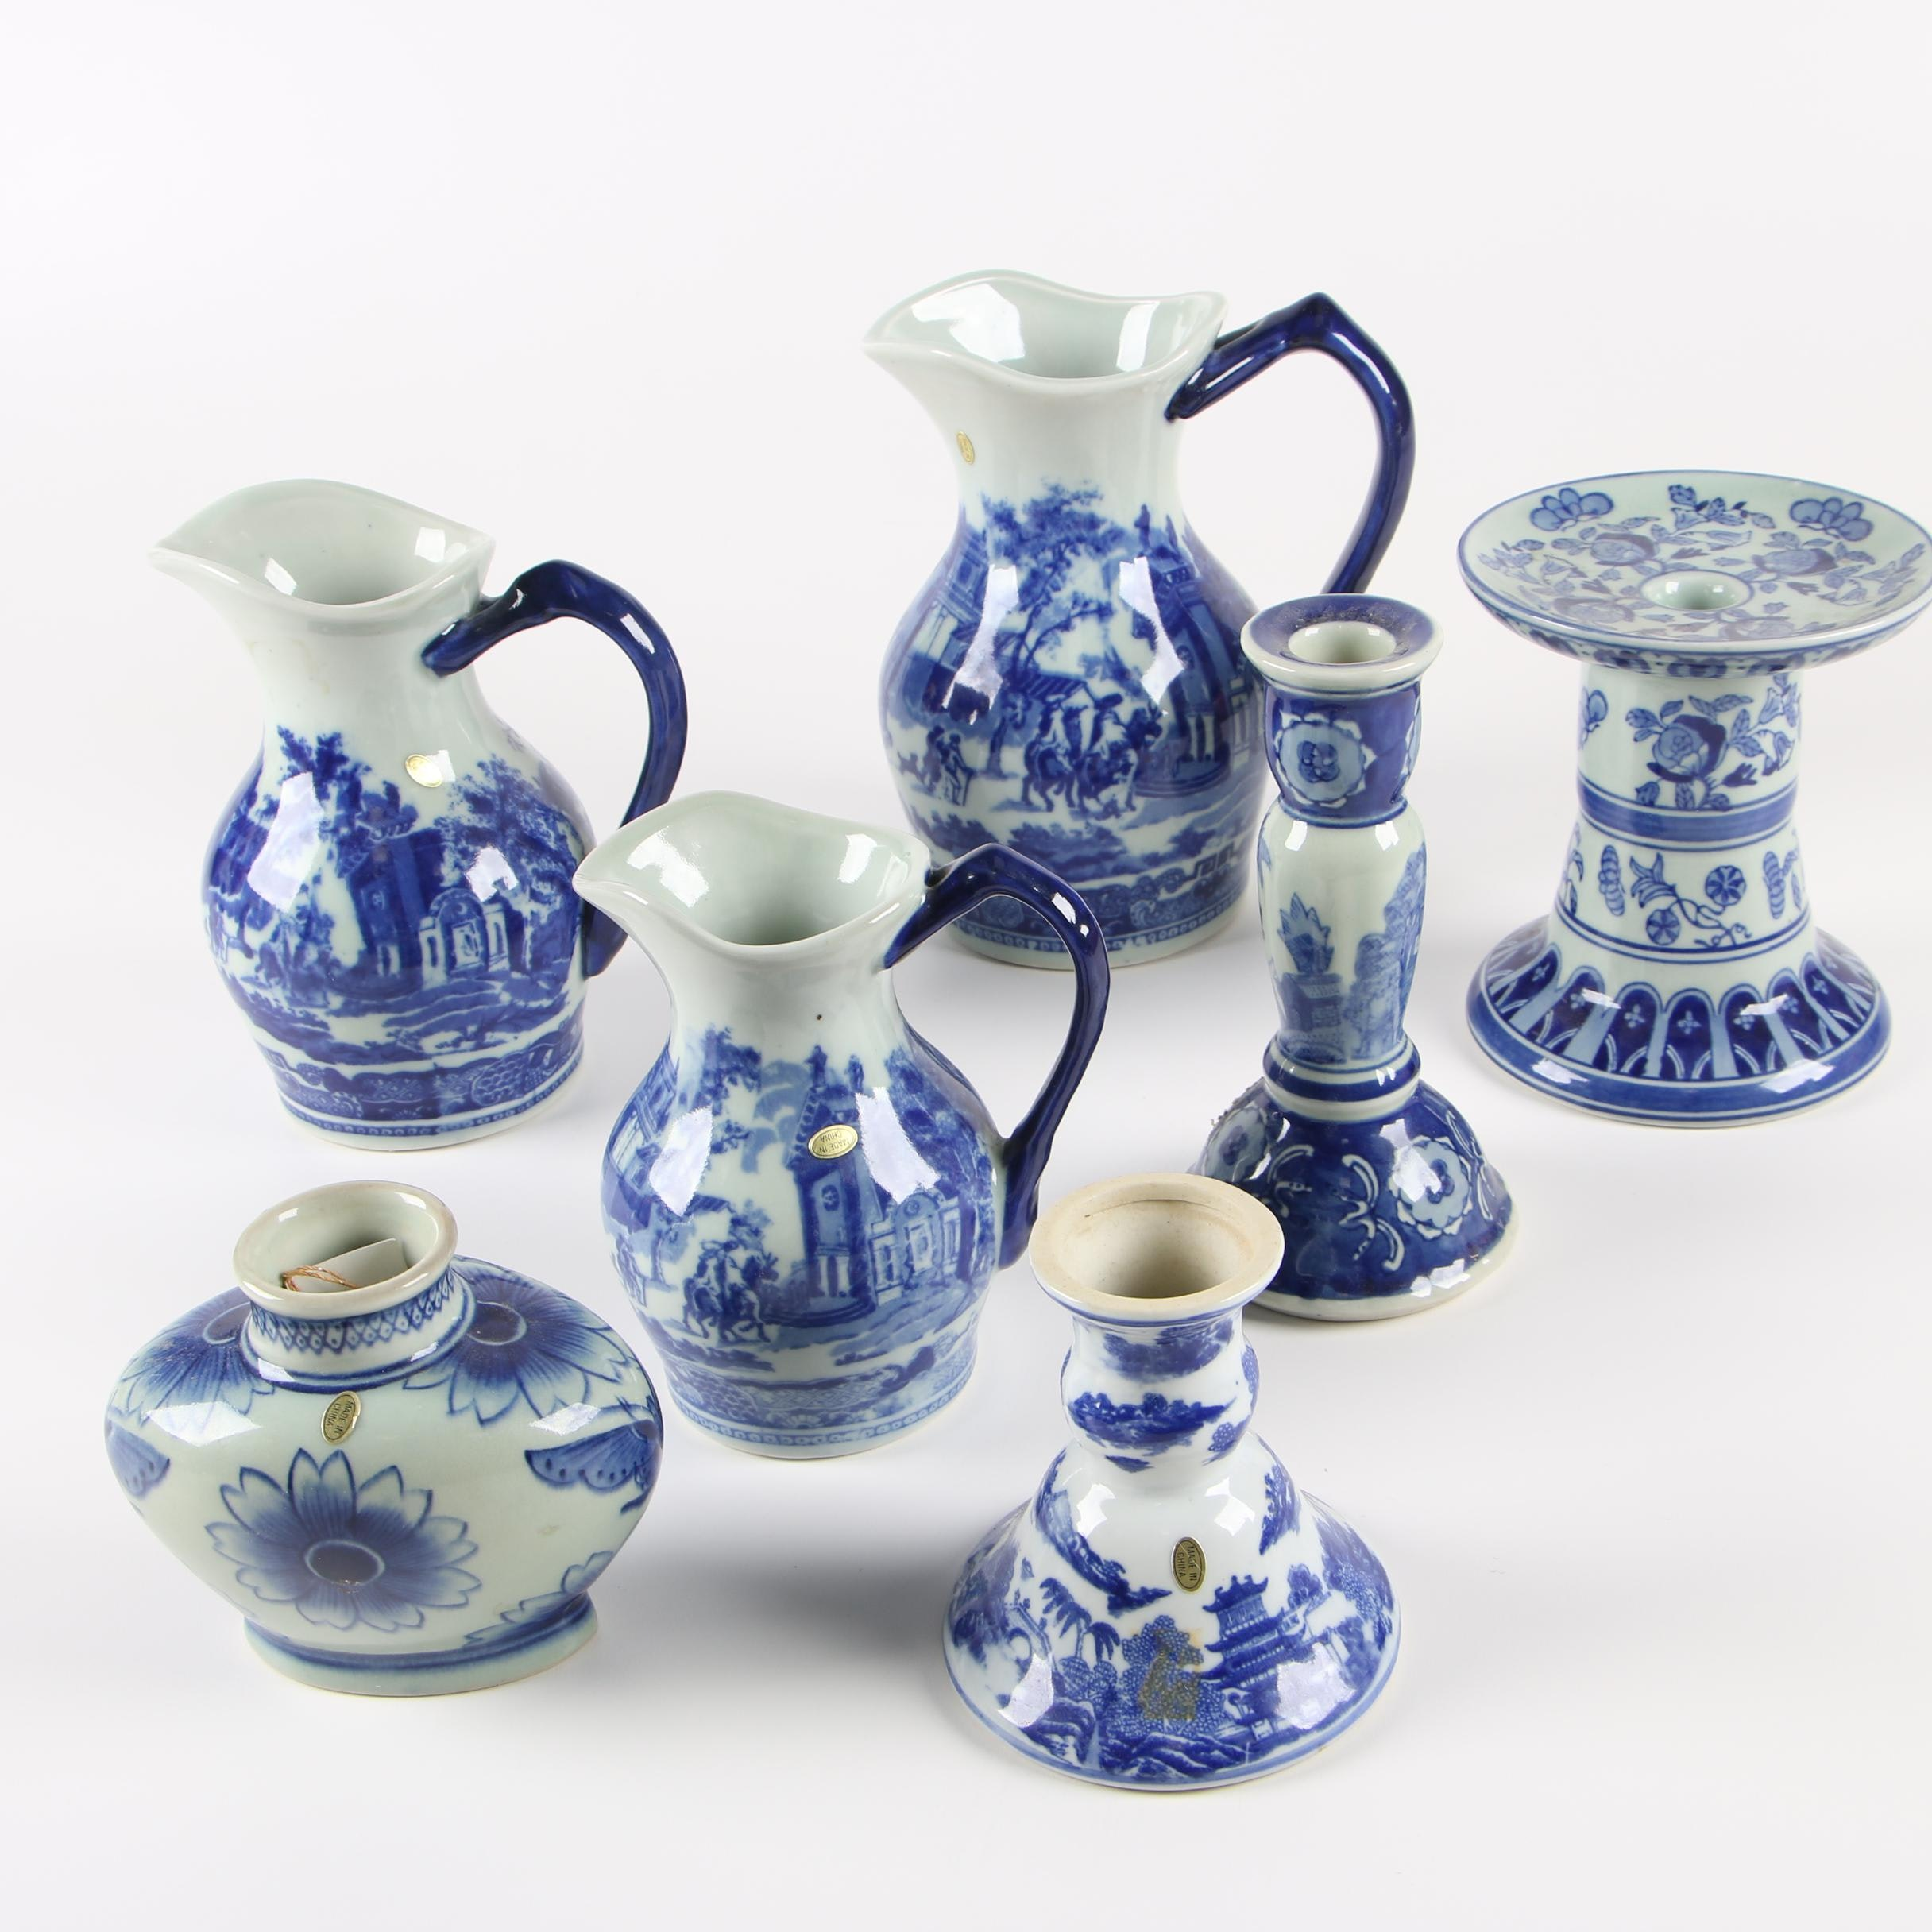 Victoria Ware Graduated Pitchers and Other Chinese Blue and White Ceramics